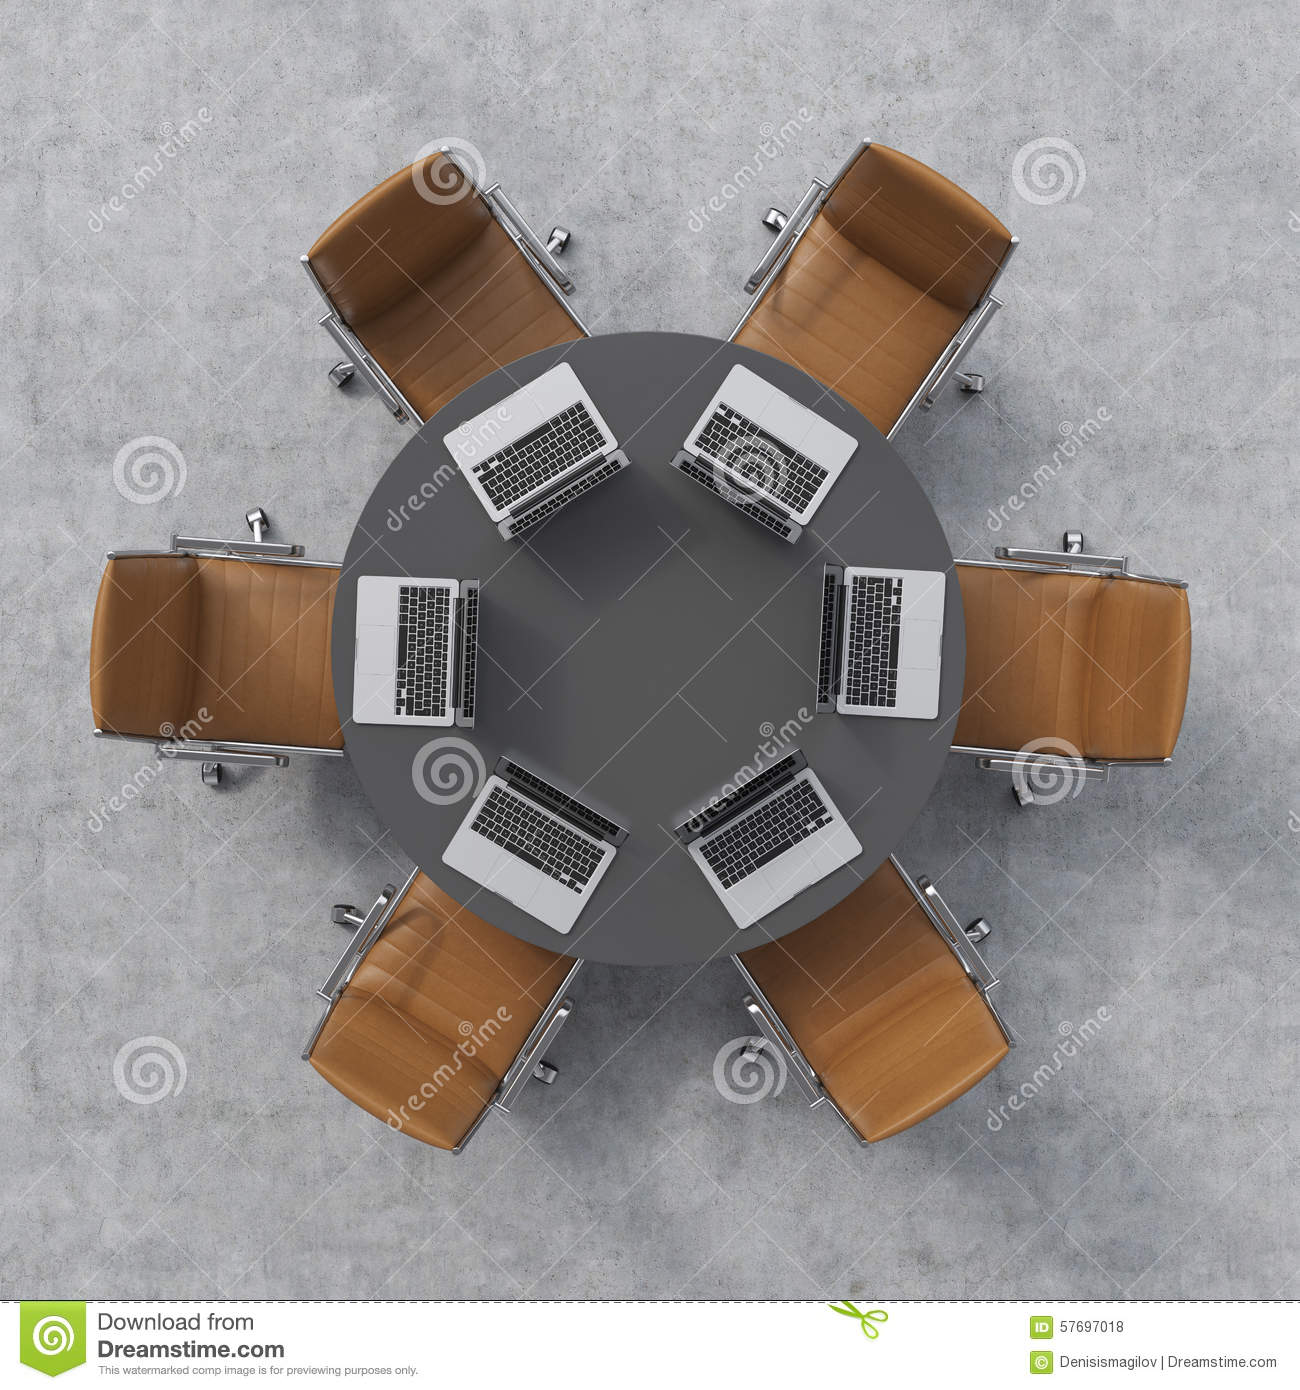 Top View Of A Conference Room. A Black Round Table, Six Brown Leather Chairs  And Six Laptops. Office Interior.